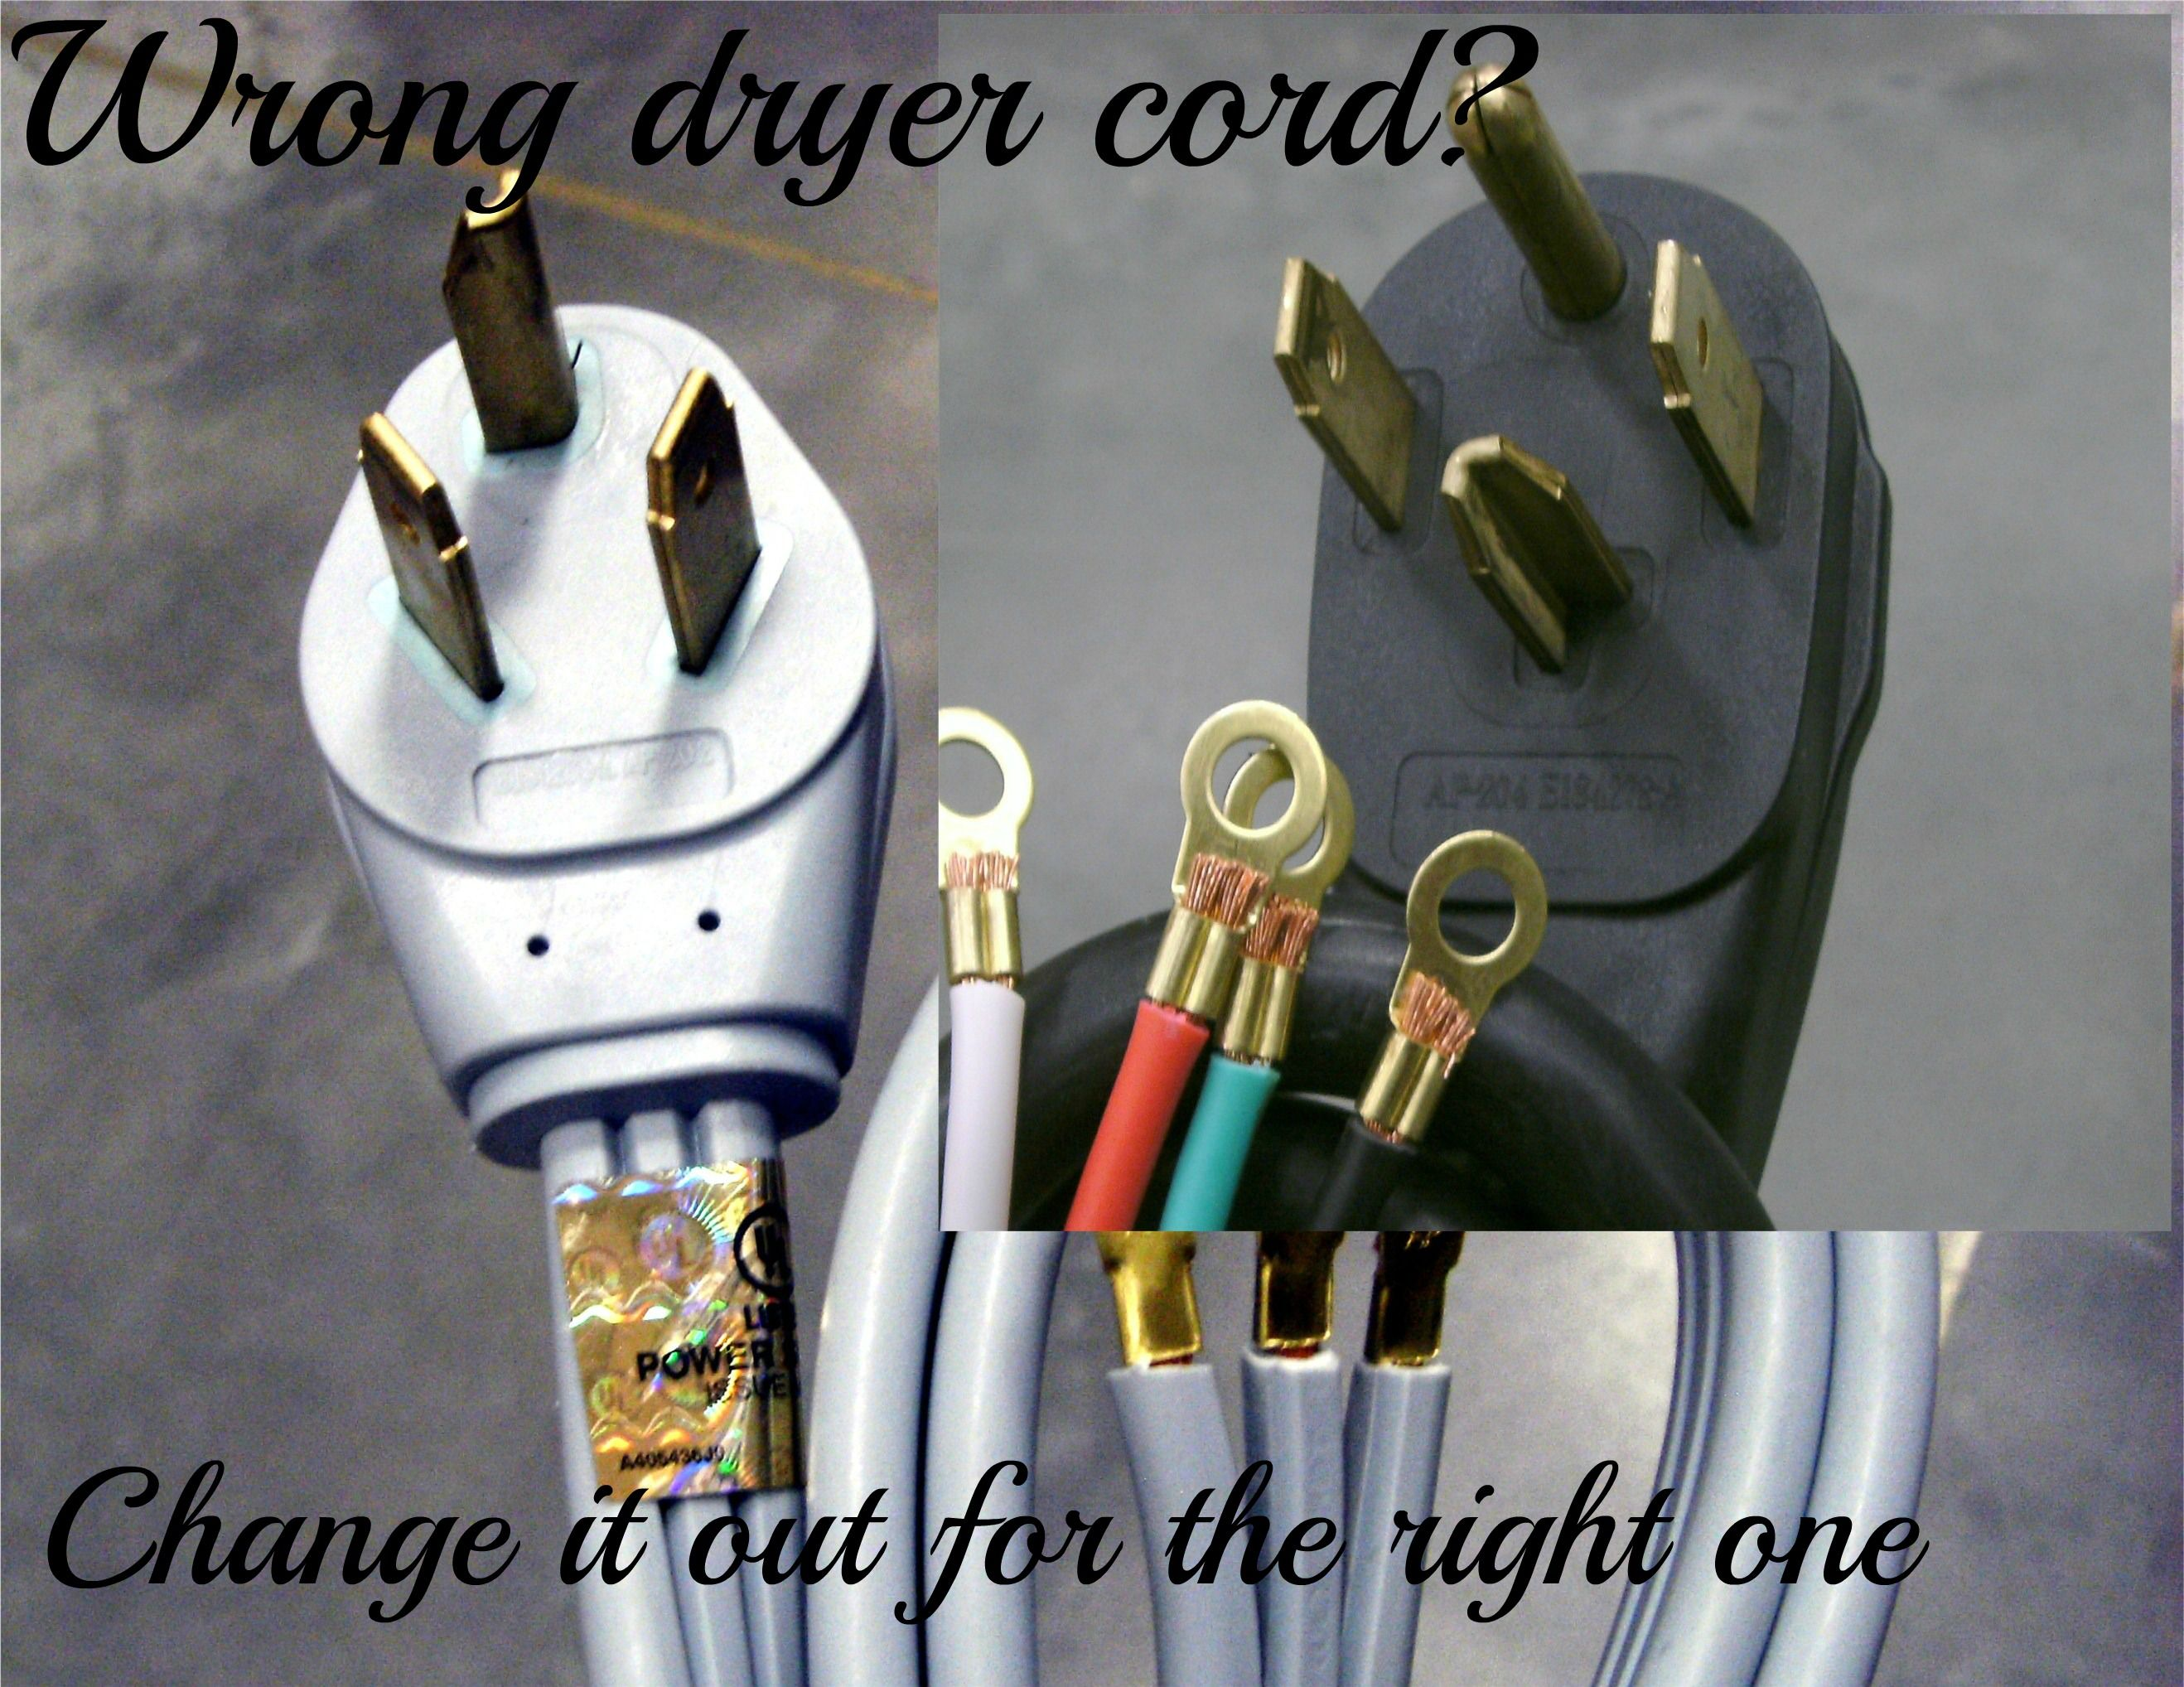 008f3bebc08145f0b0901e4baf420a22 changing a 3 prong to 4 prong dryer plug and cord cord, change wiring diagram for 4 prong dryer outlet at mifinder.co